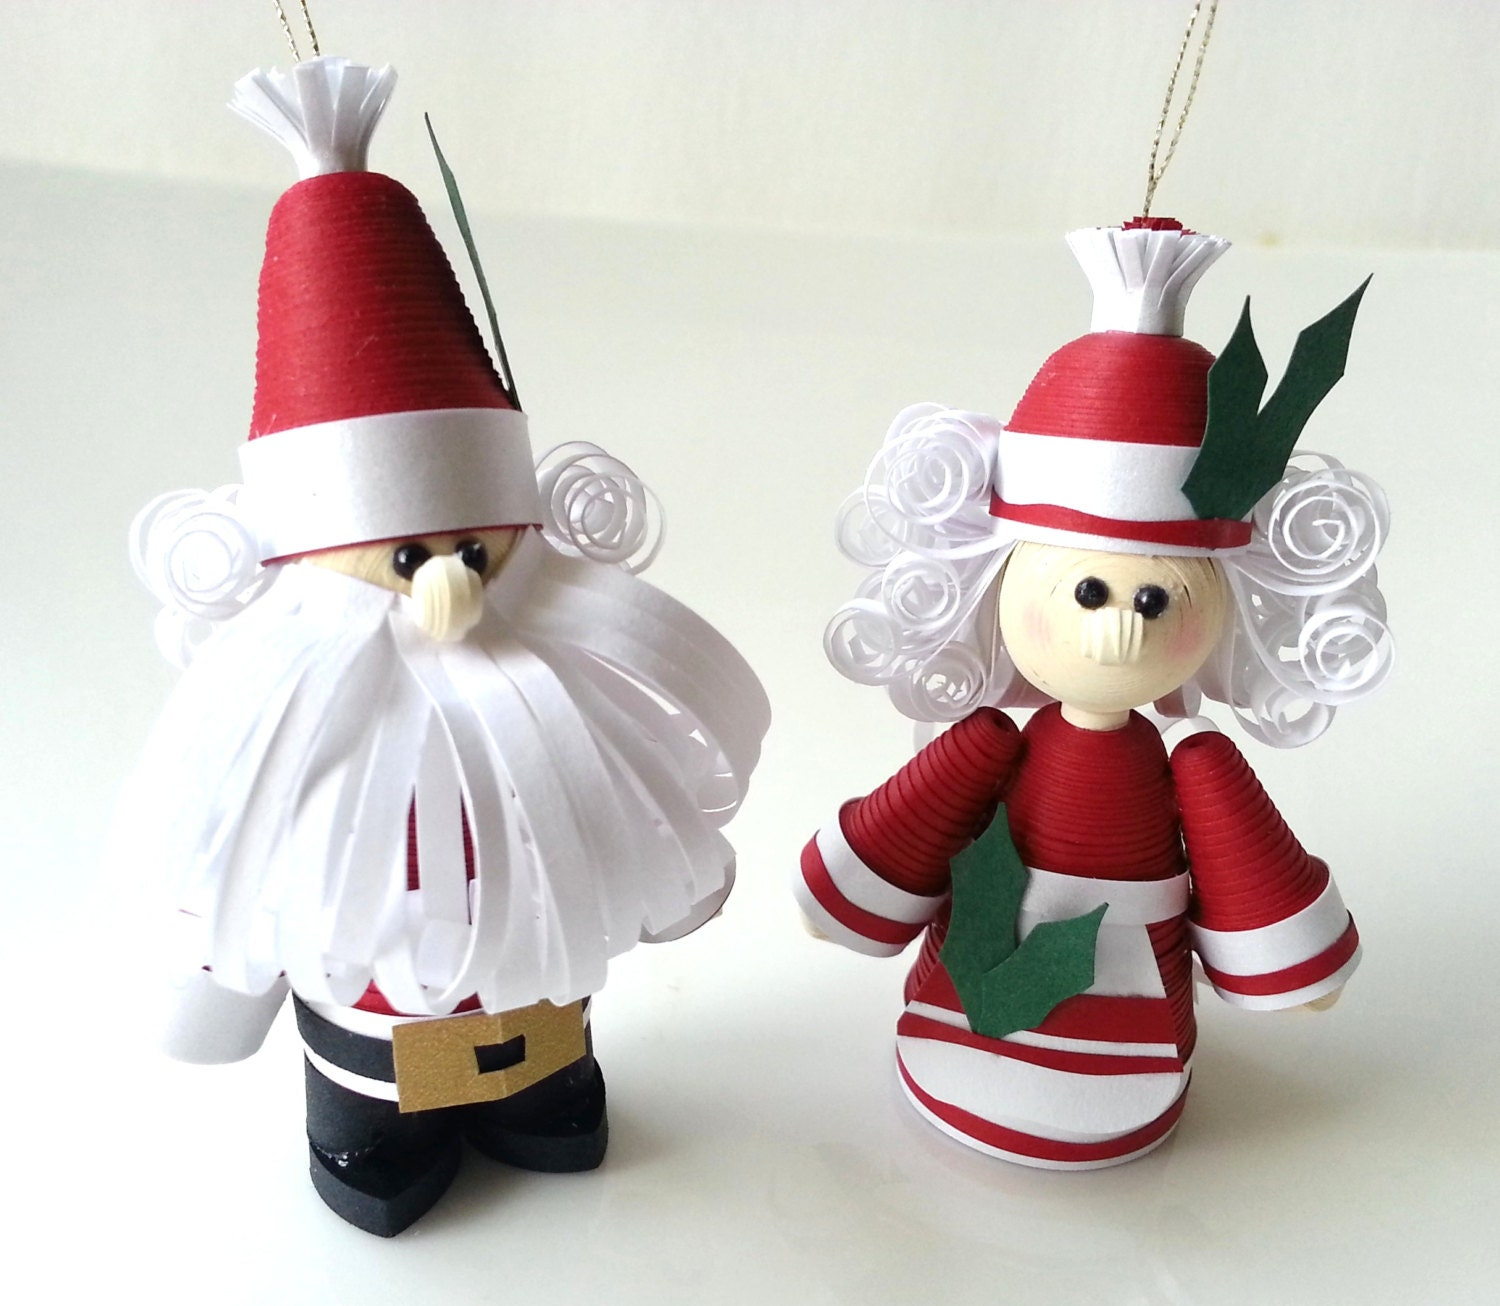 Mr and mrs claus ornaments -  Zoom